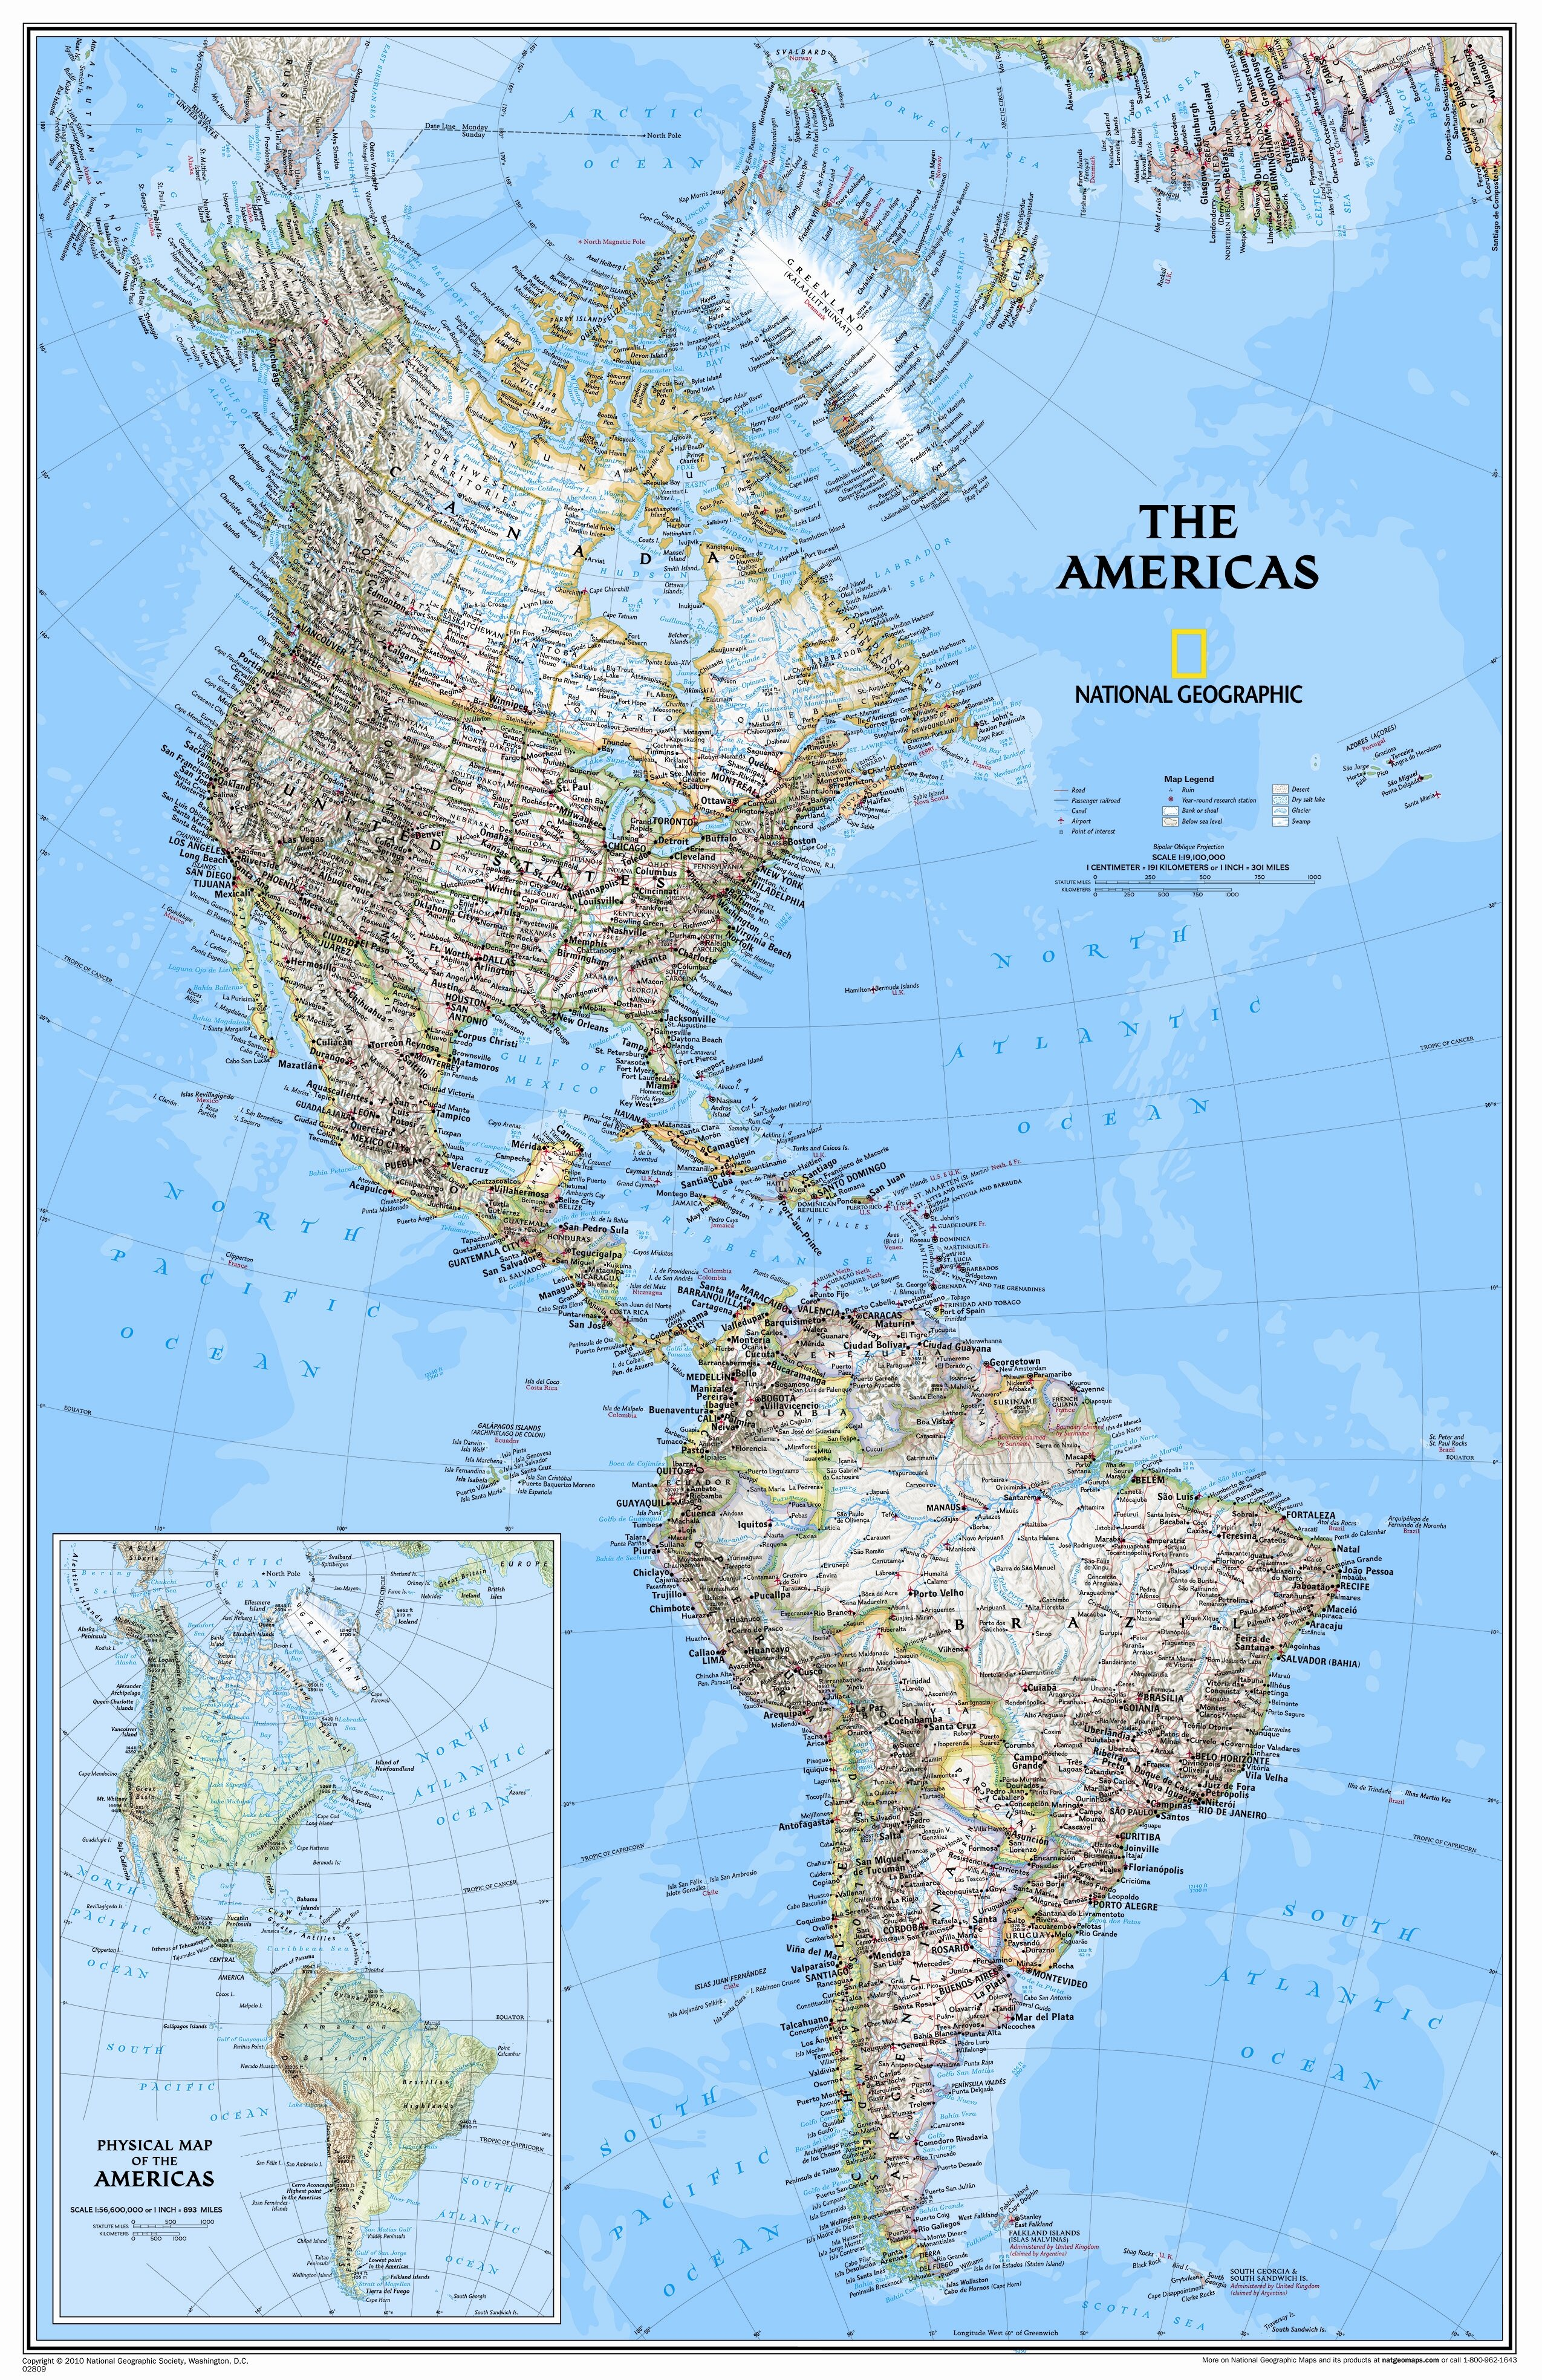 National Geographic Maps The Americas Clic Wall Map | Wayfair on